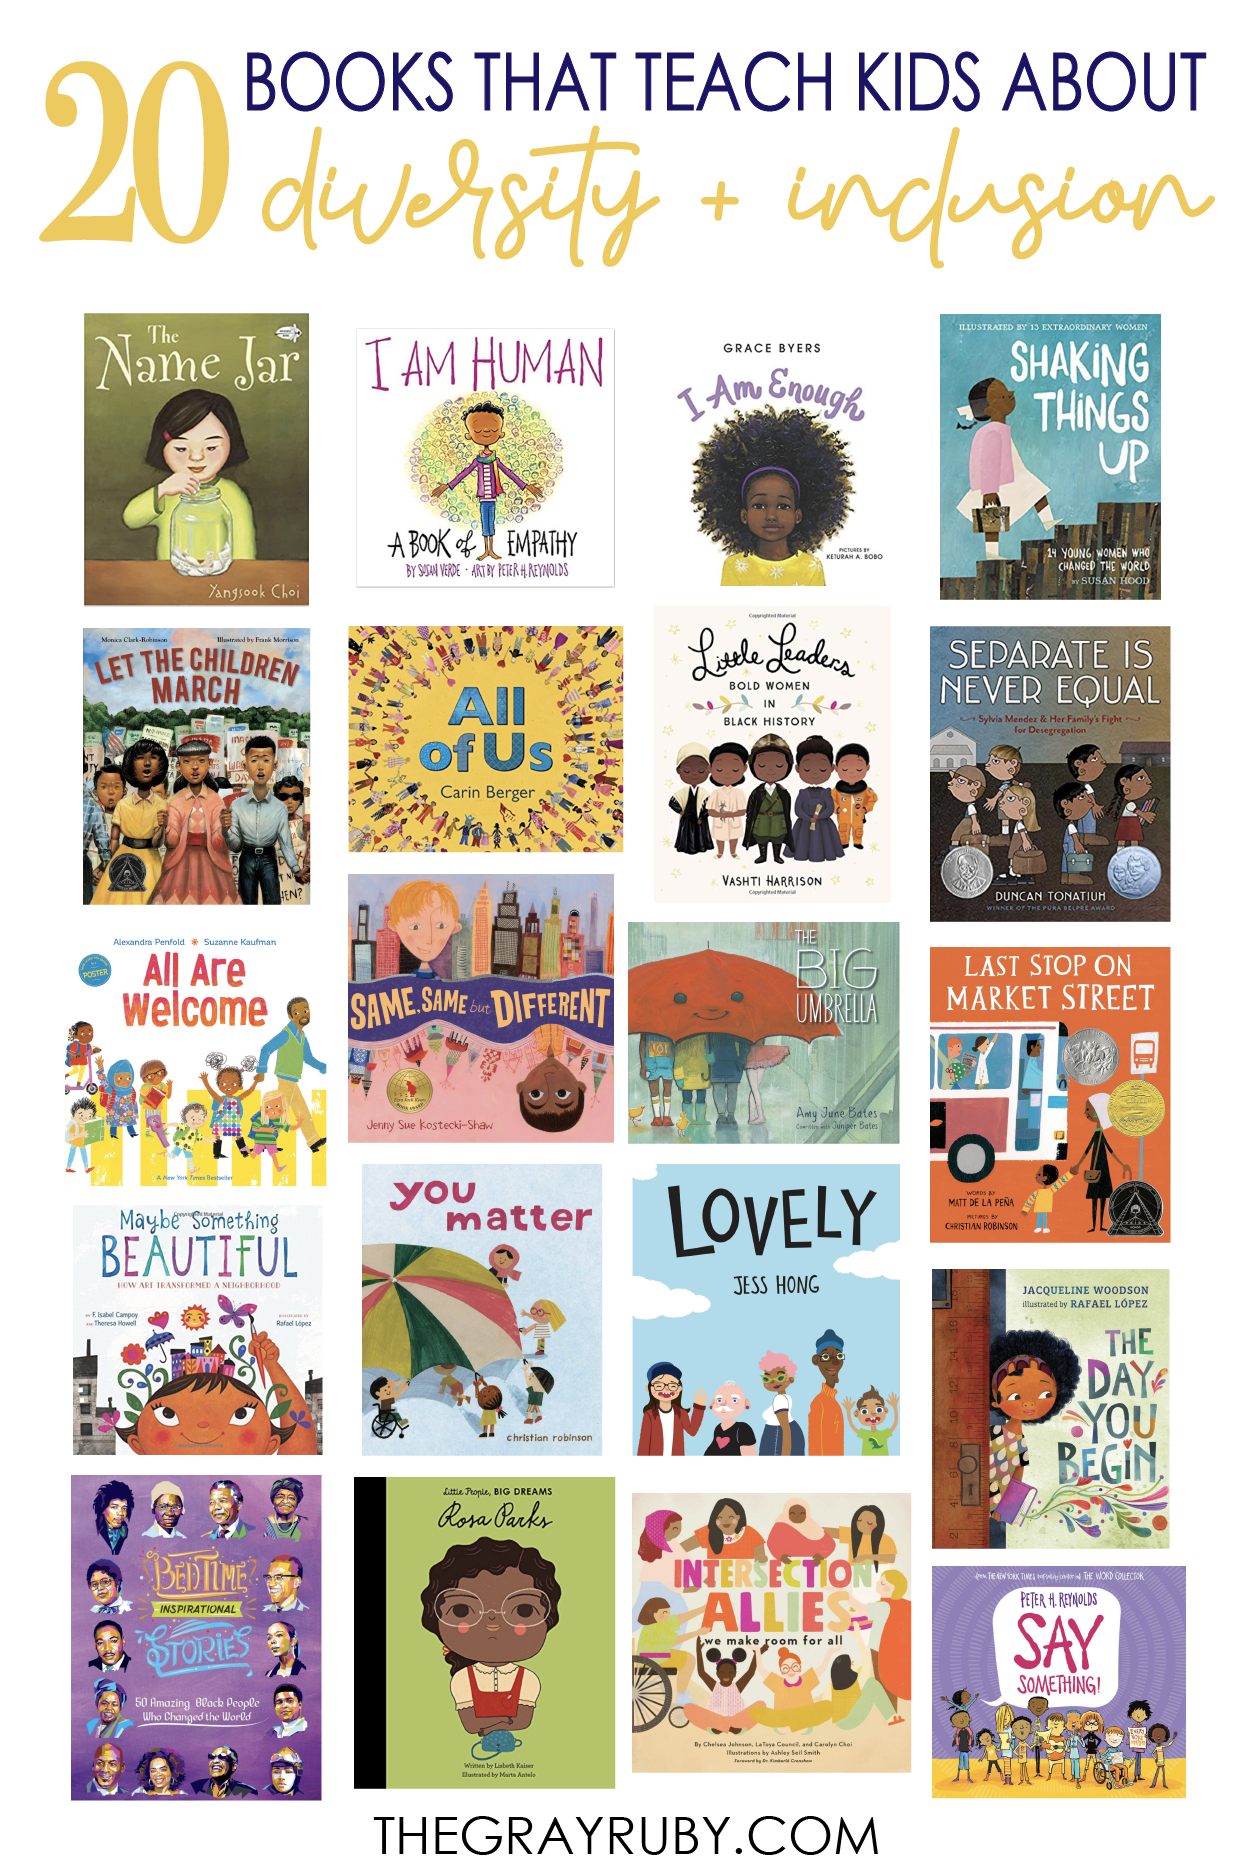 Books that teach kids about diversity and inclusion